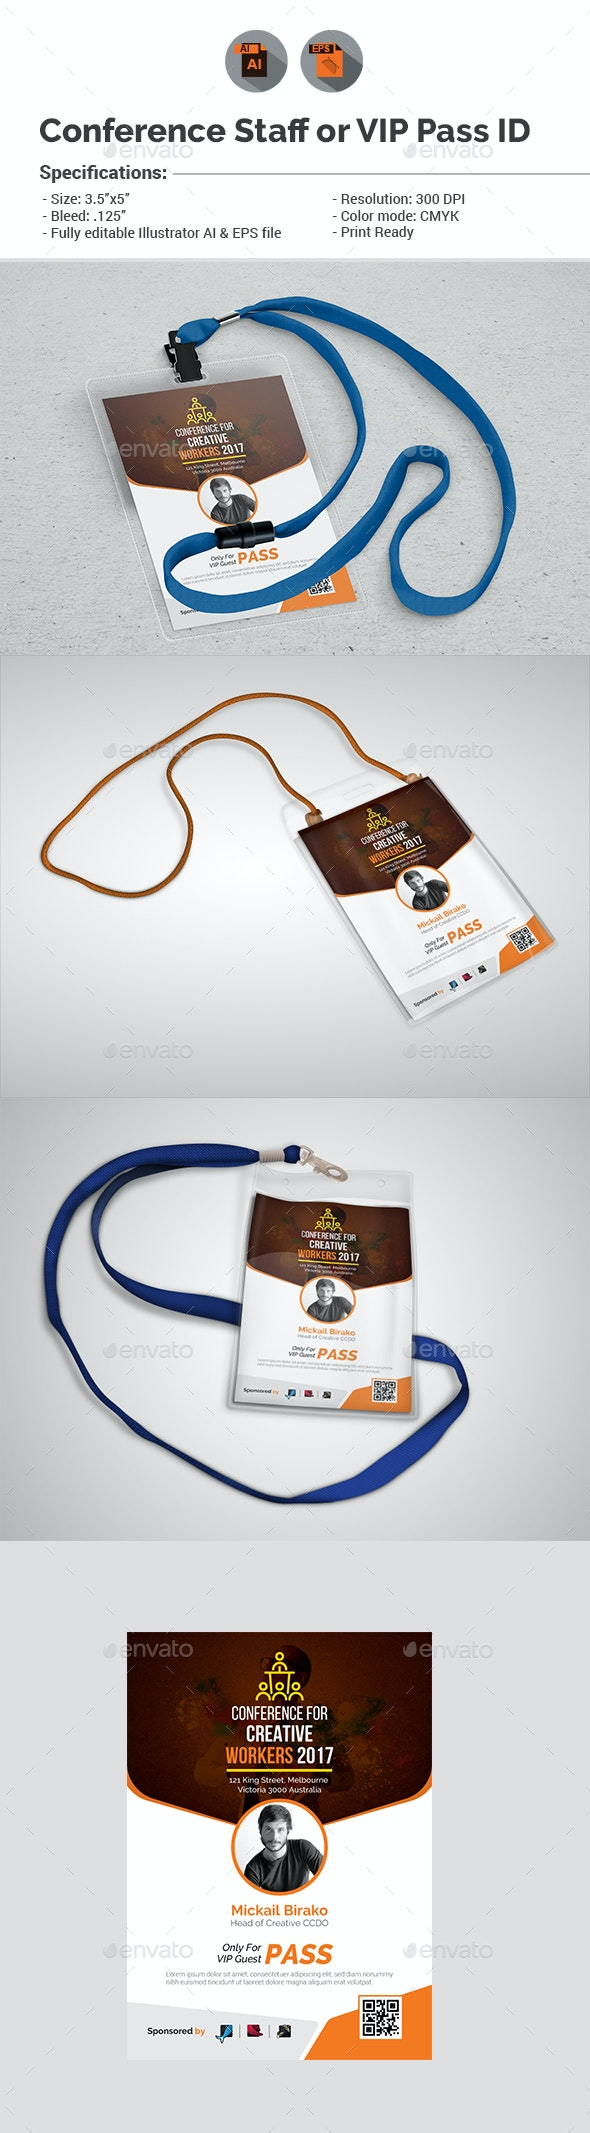 Conference/Event Staff or VIP Pass ID Template - Events Flyers